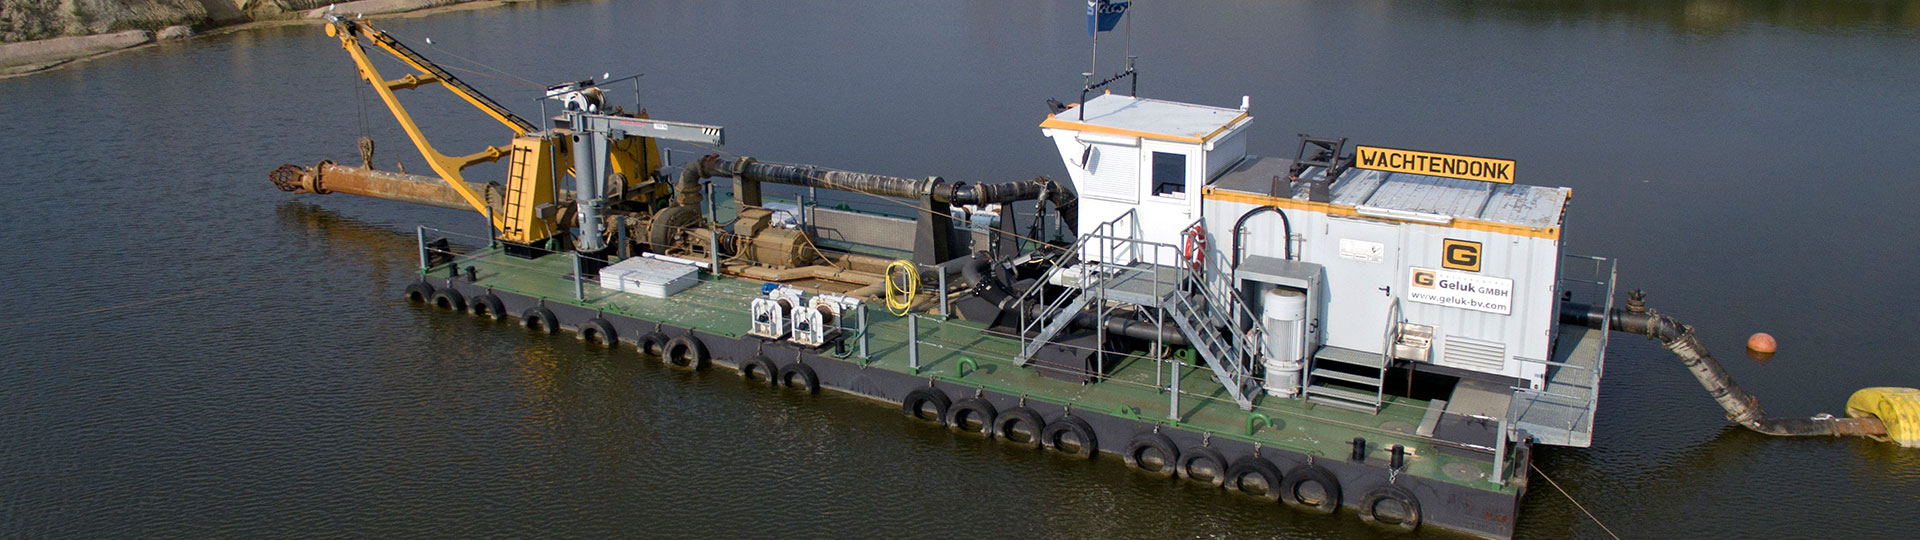 Royal Smals, cutter suction dredger Wachtendonk.